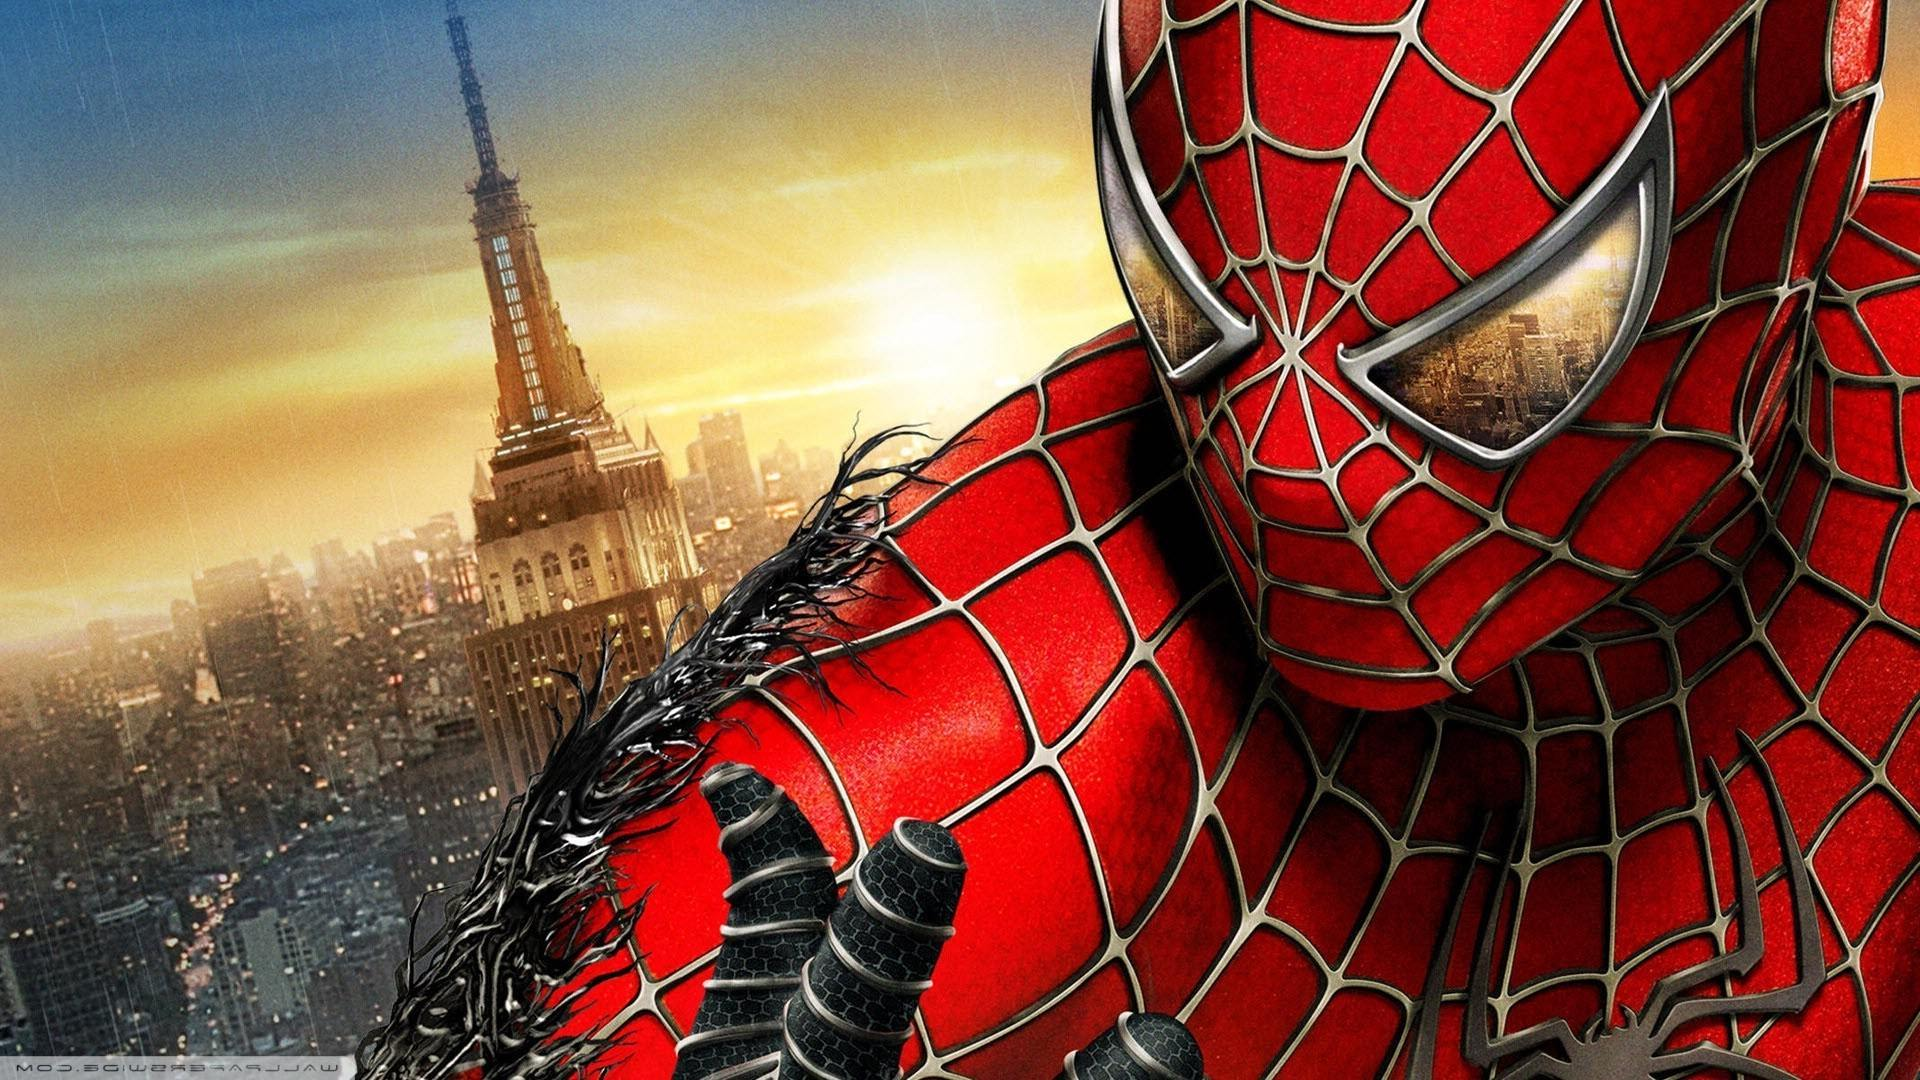 Spiderman 3 Wallpapers Hd 8